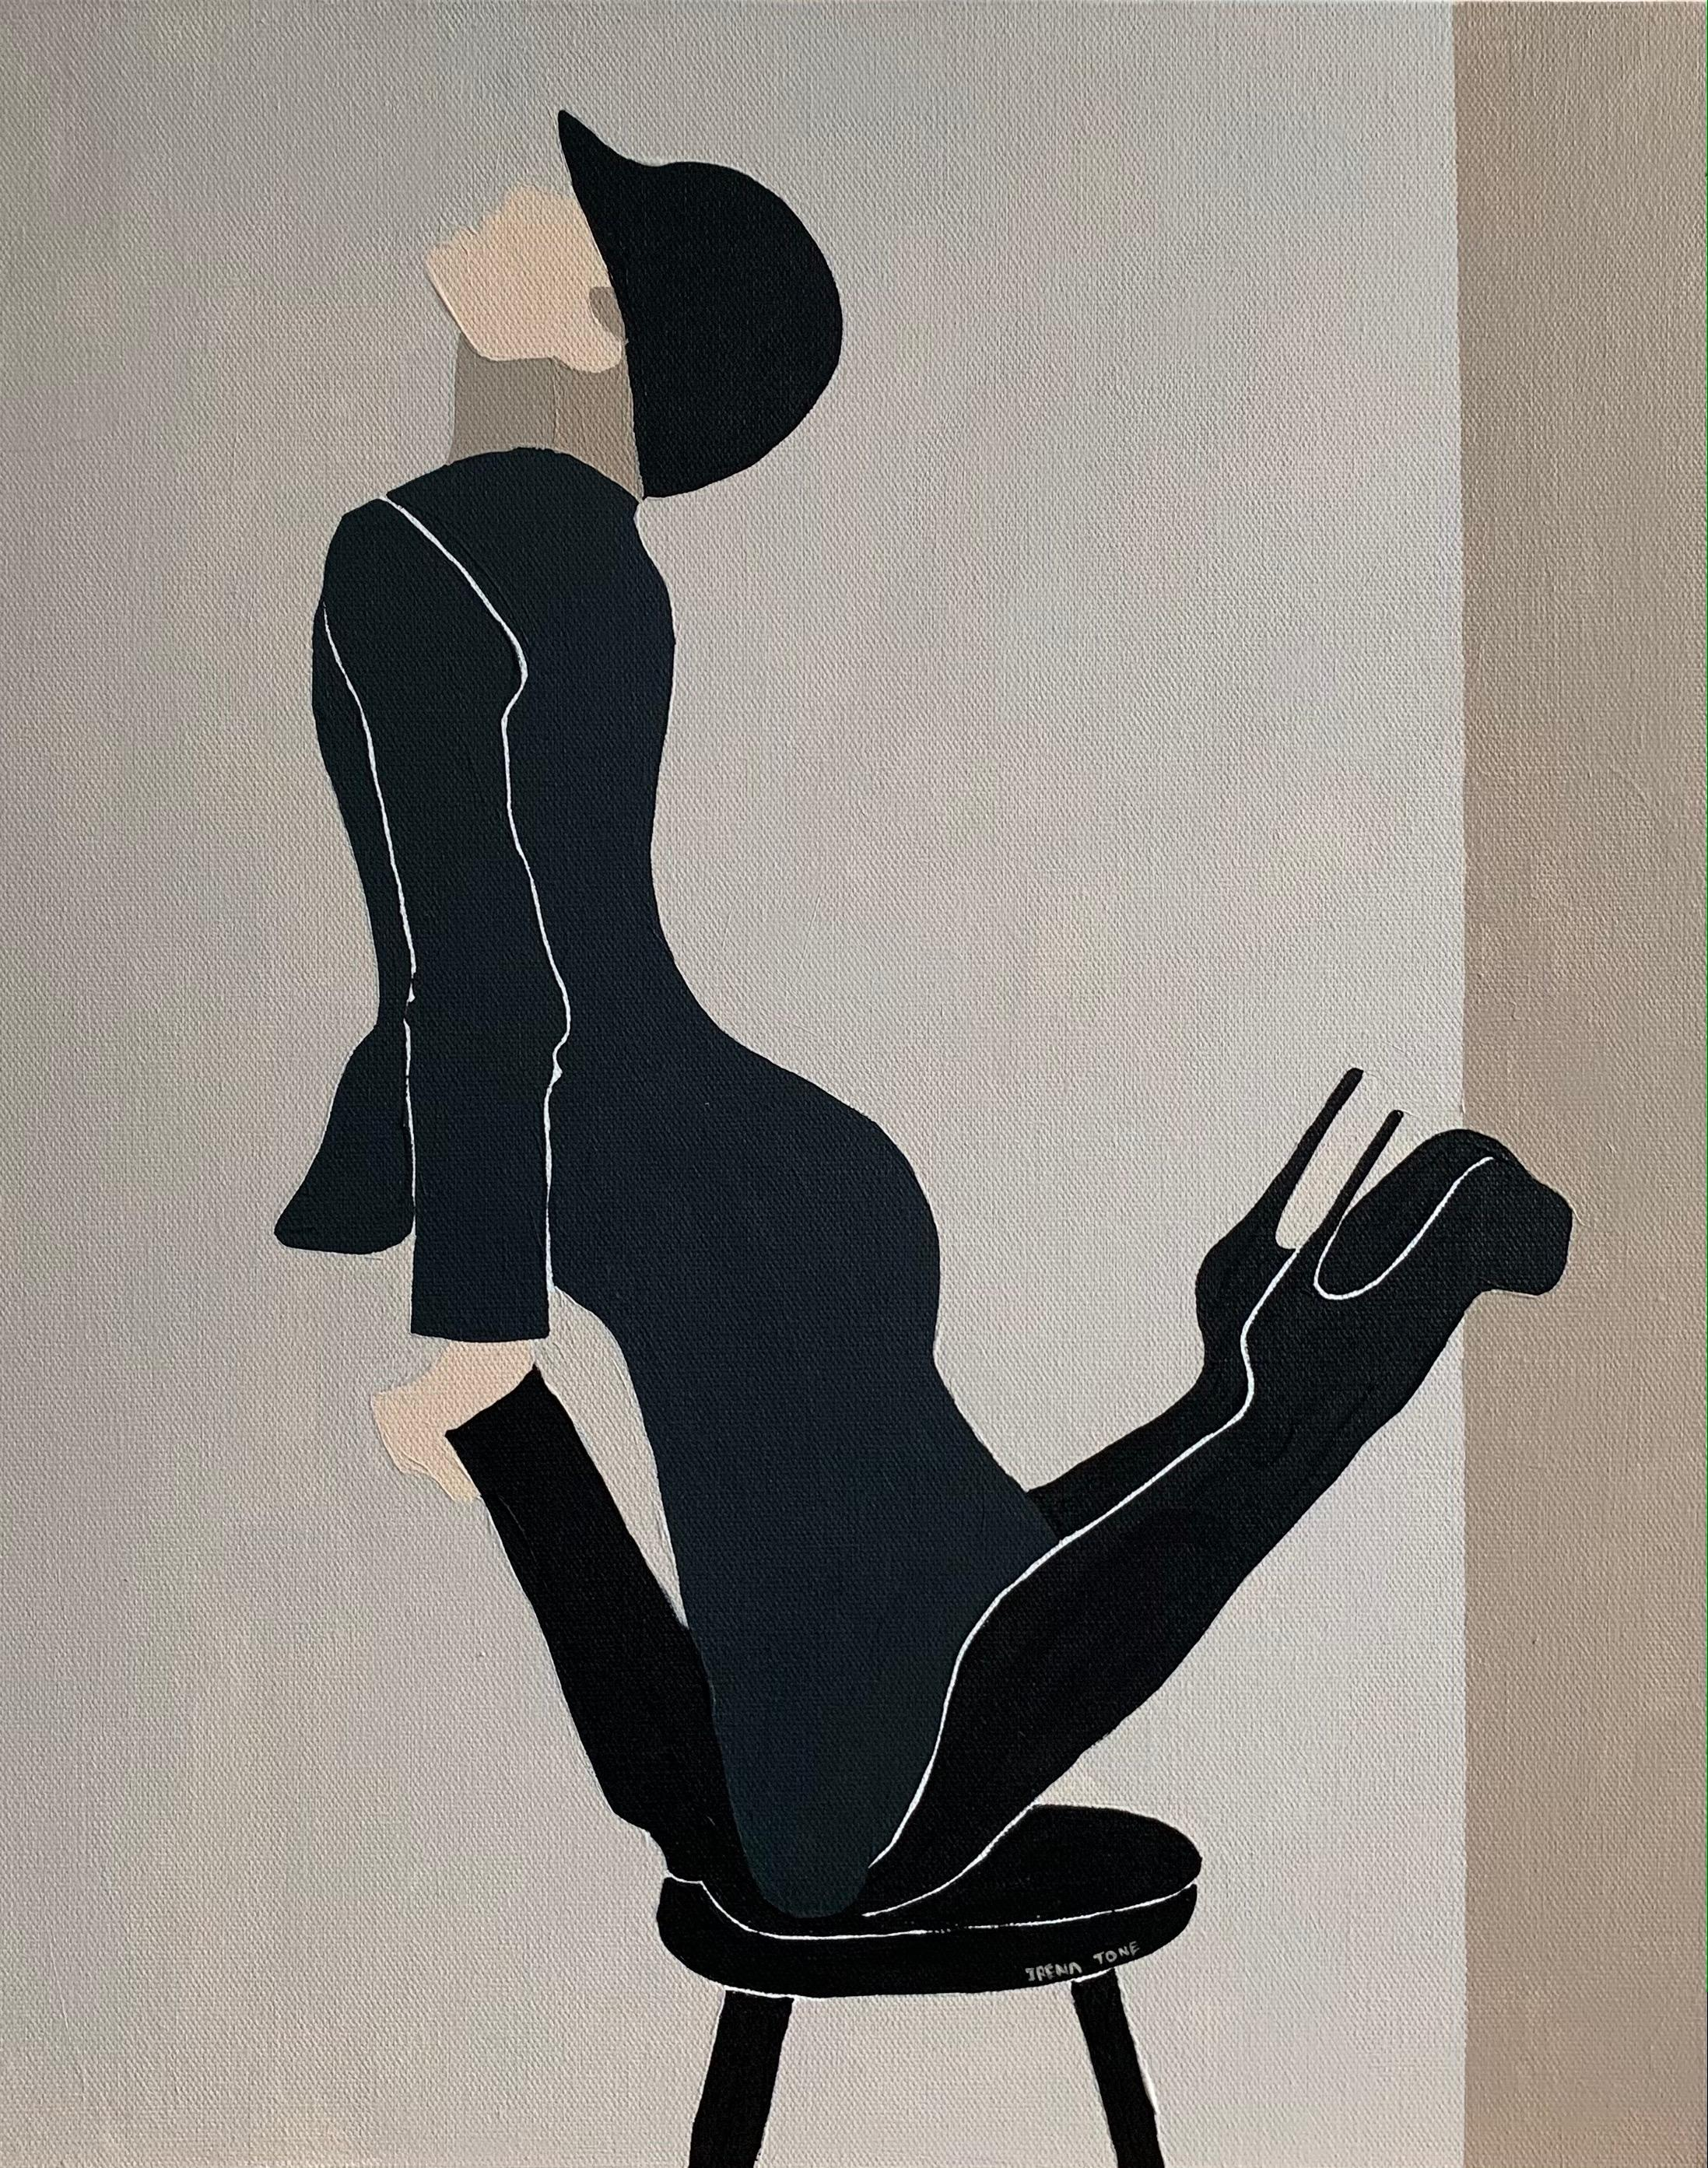 Beige: stool, woman abstract portrait painting, 2021